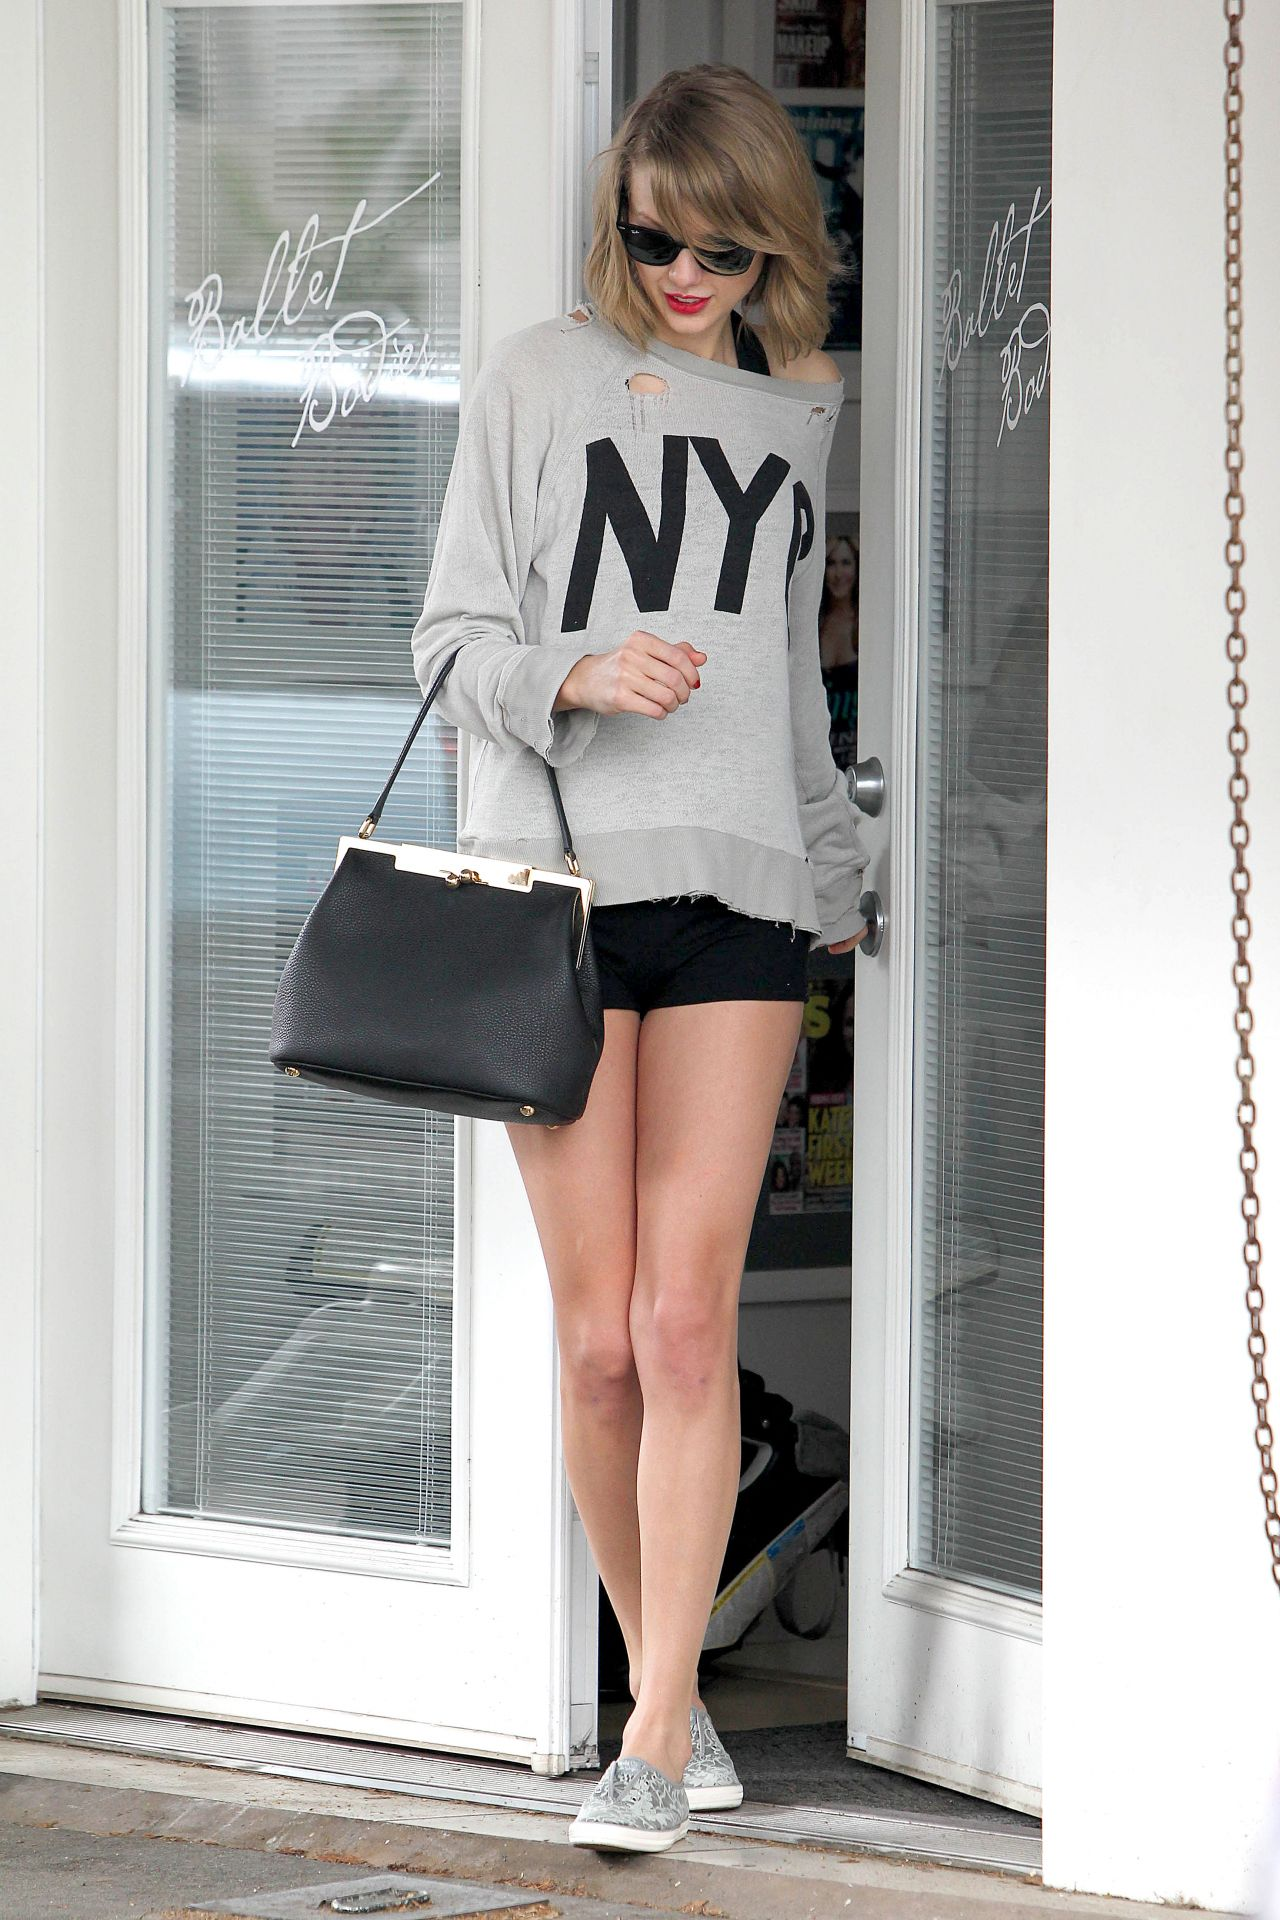 Taylor Swift Leaving A Dance Studio March 2014